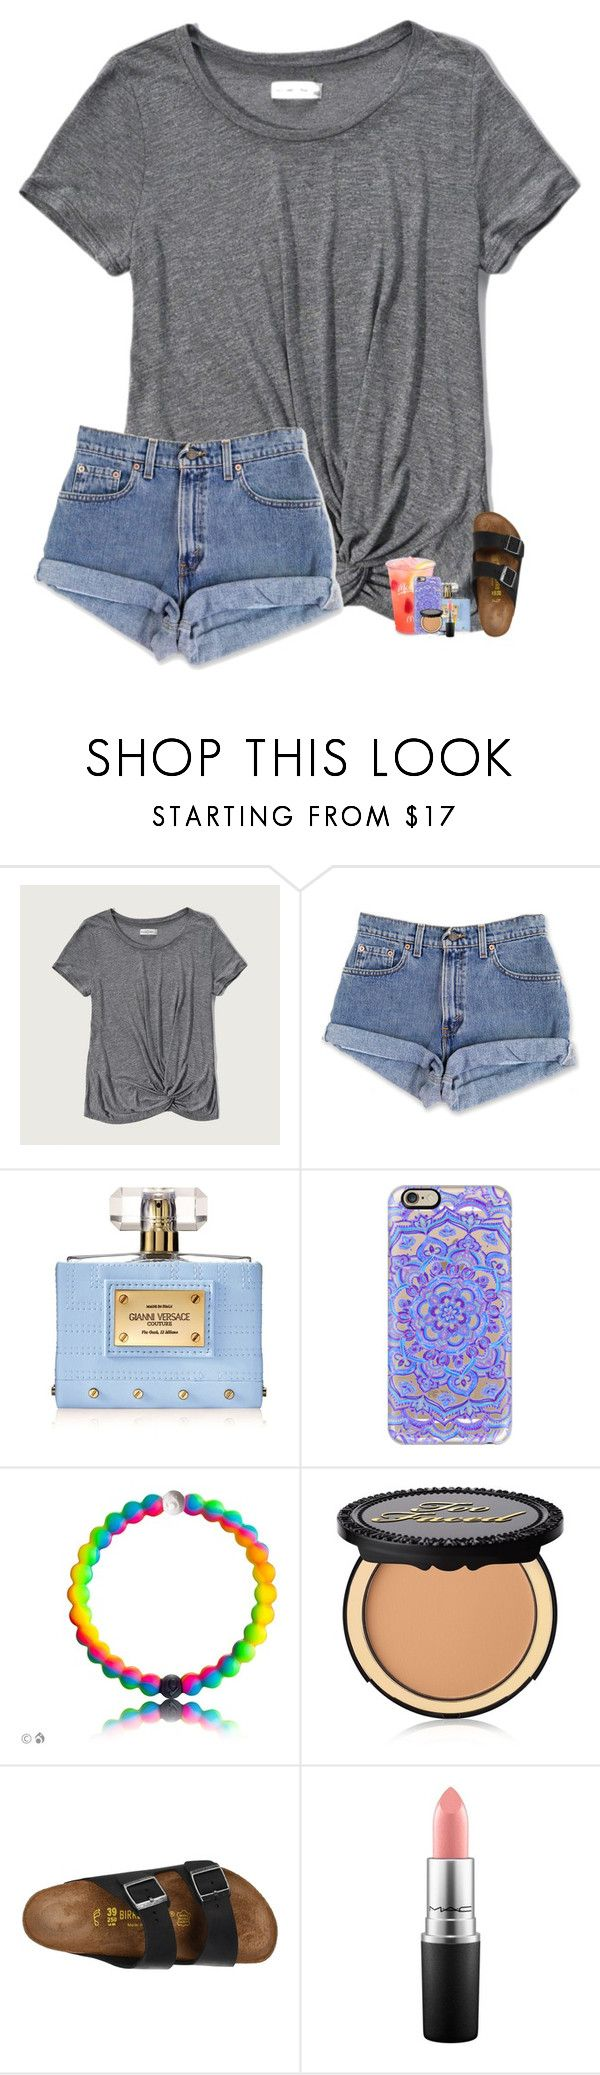 """""""comment for a tbh"""" by theblonde07 ❤ liked on Polyvore featuring Abercrombie & Fitch, Versace, Casetify, Too Faced Cosmetics, Birkenstock and MAC Cosmetics"""